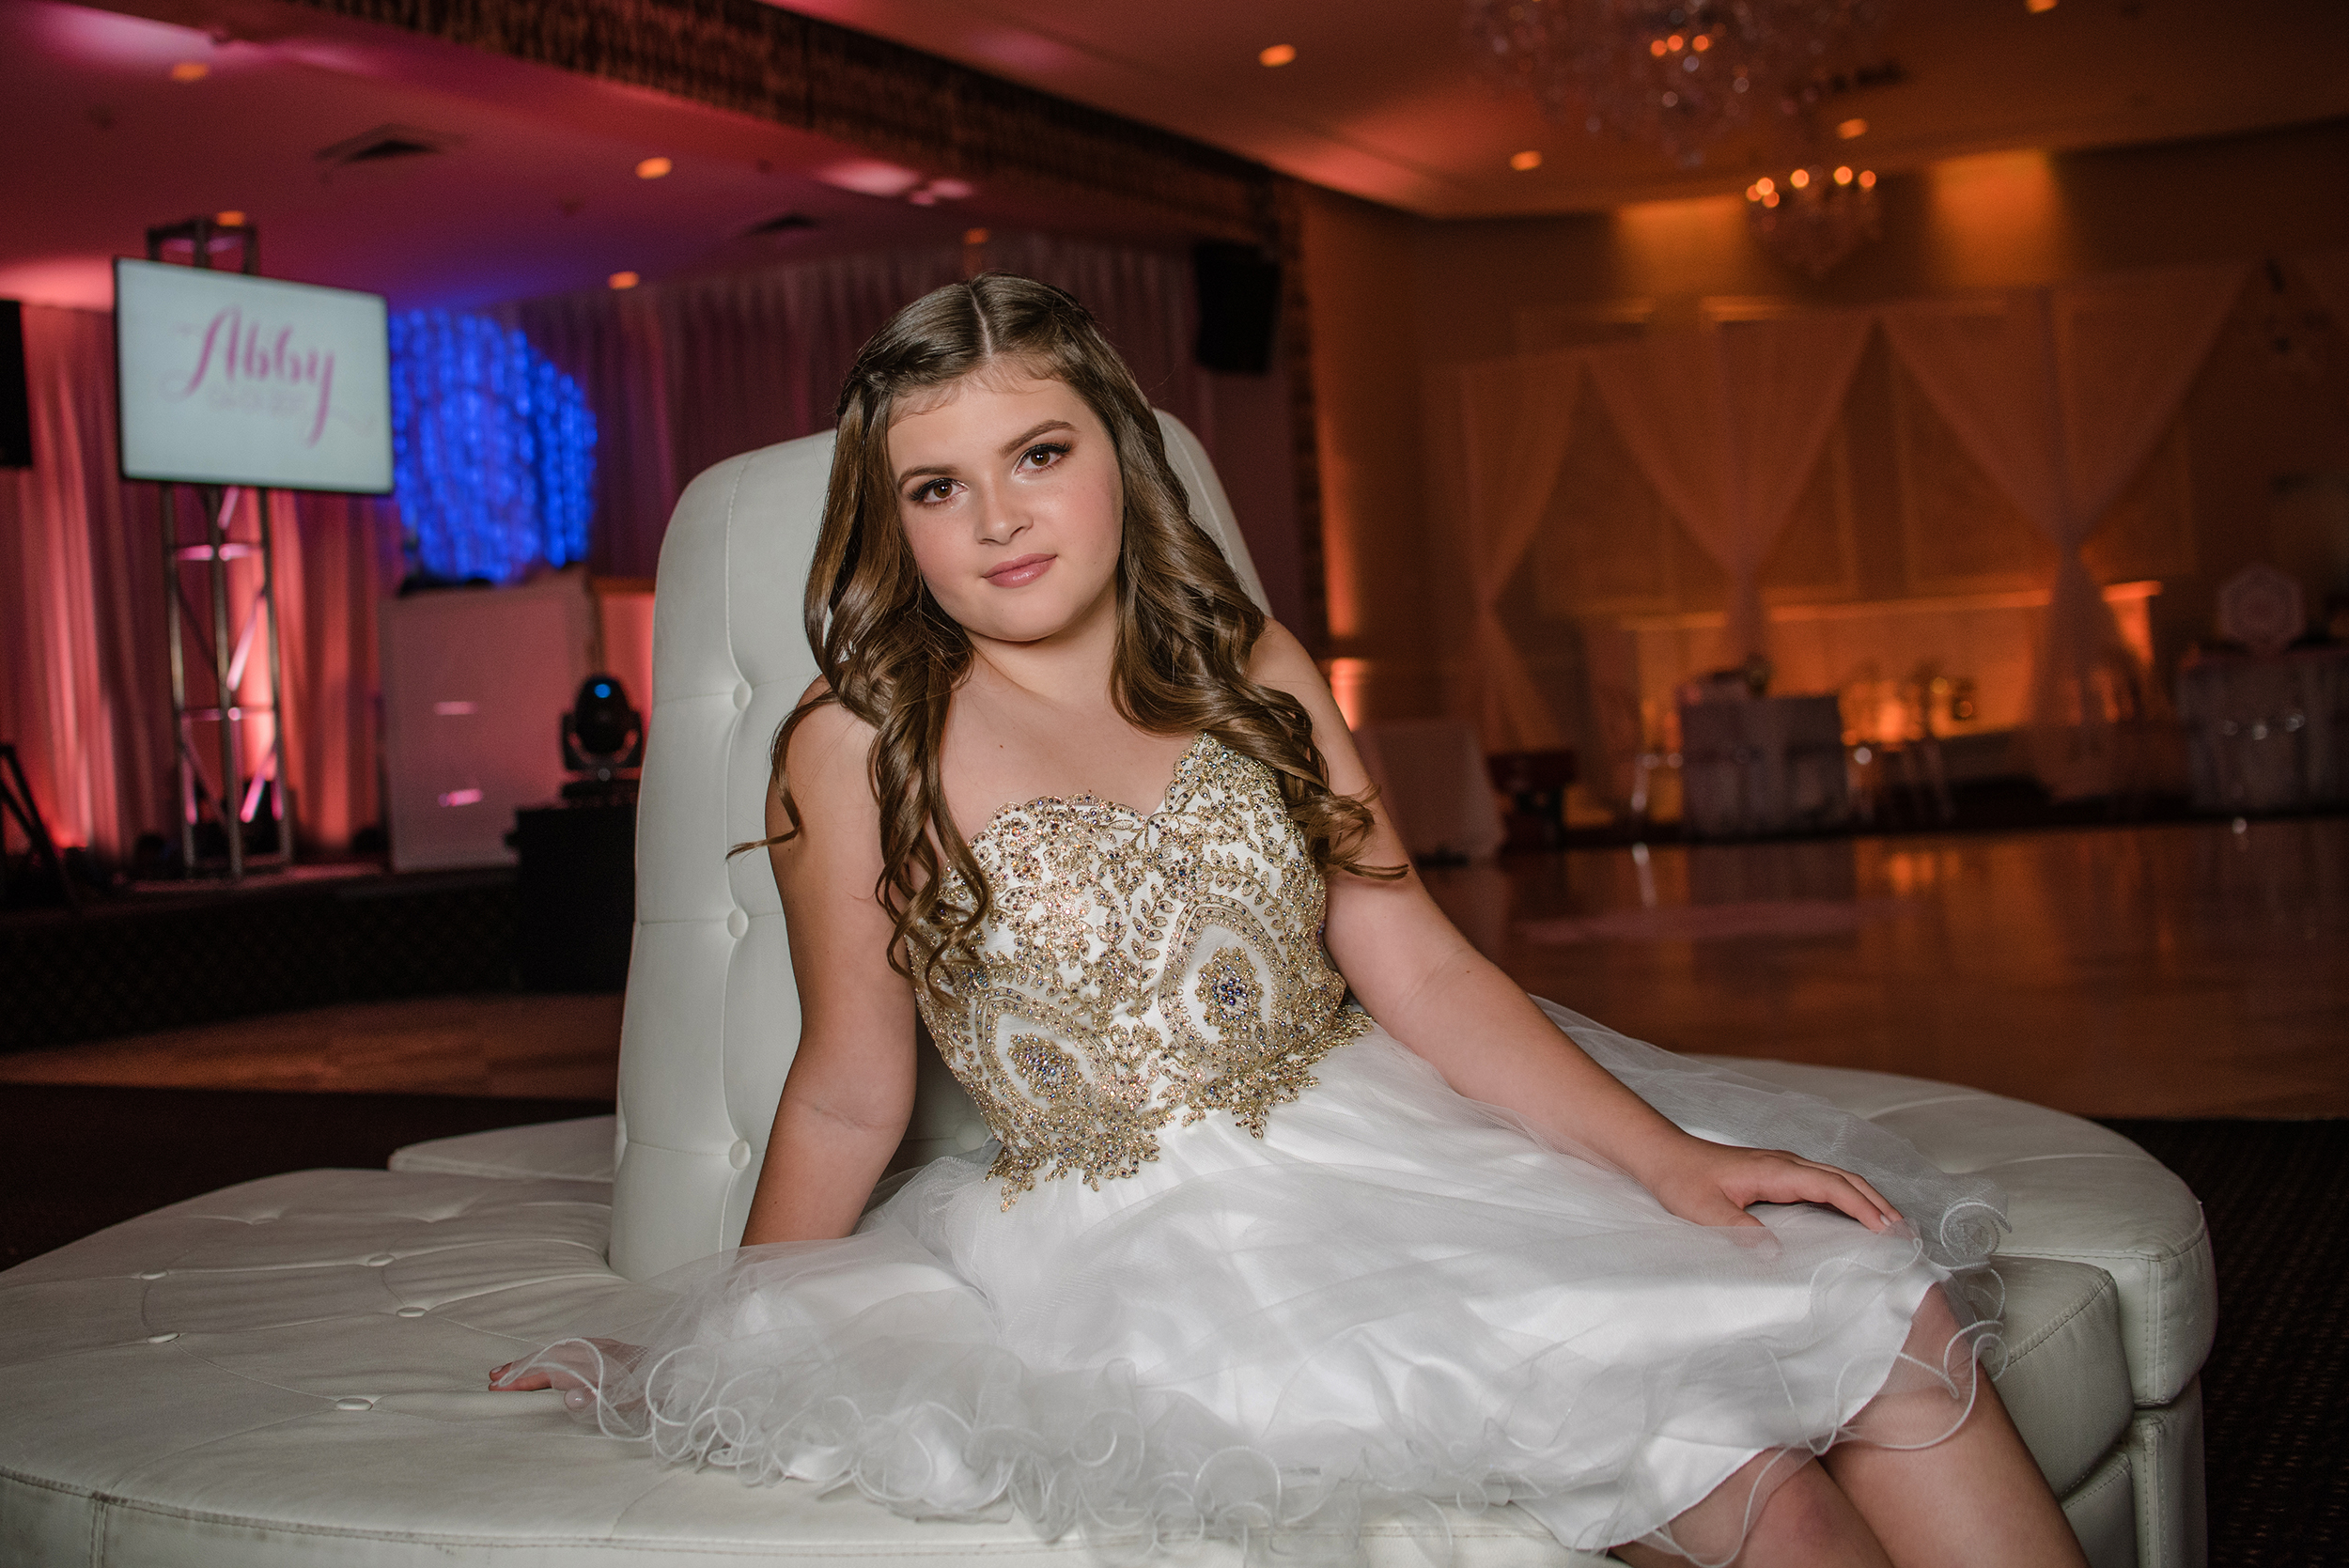 mitzvah-event-photography-south-florida-alison-frank-photography_01.jpg